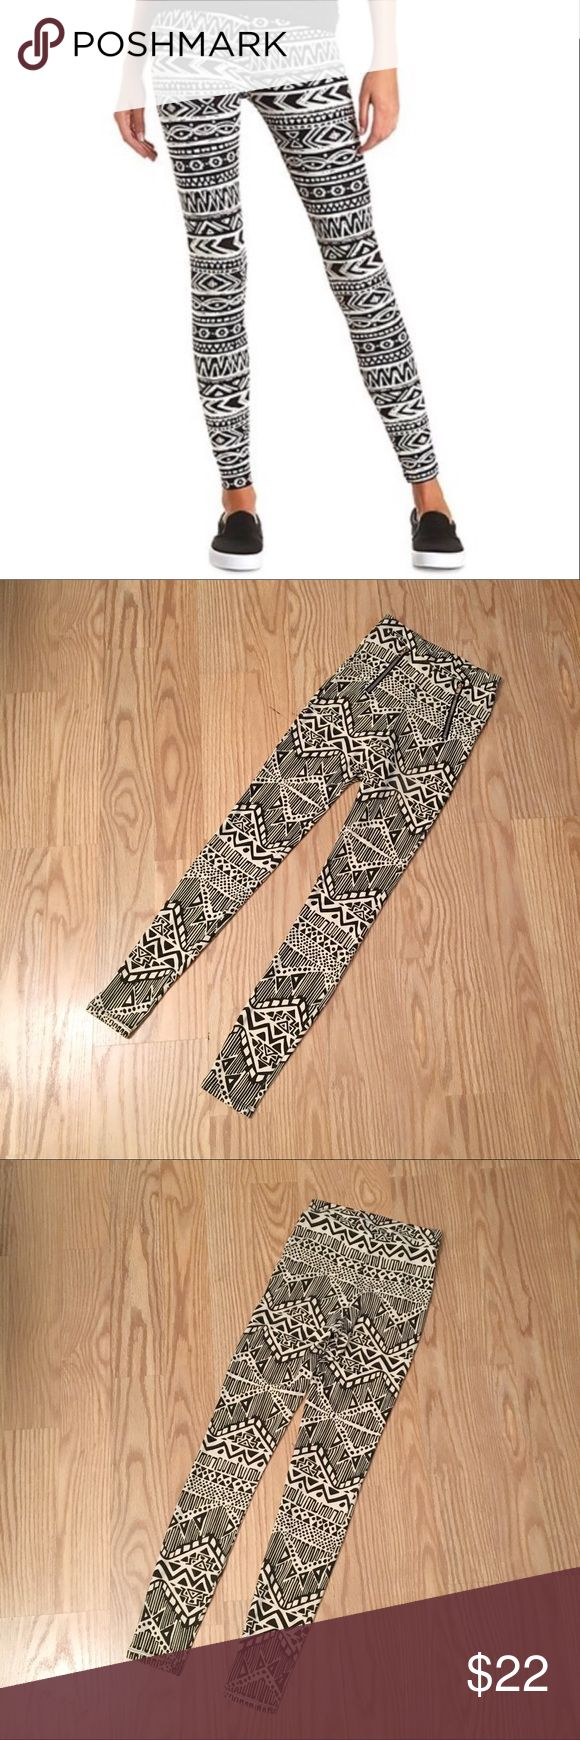 "CHARLOTTE RUSSE Tribal print leggings CHARLOTTE RUSSE black and off white tribal print leggings | gold zippers ok front where pockets would be | mid rise | size S | inseam is 28"" Charlotte Russe Pants Leggings"